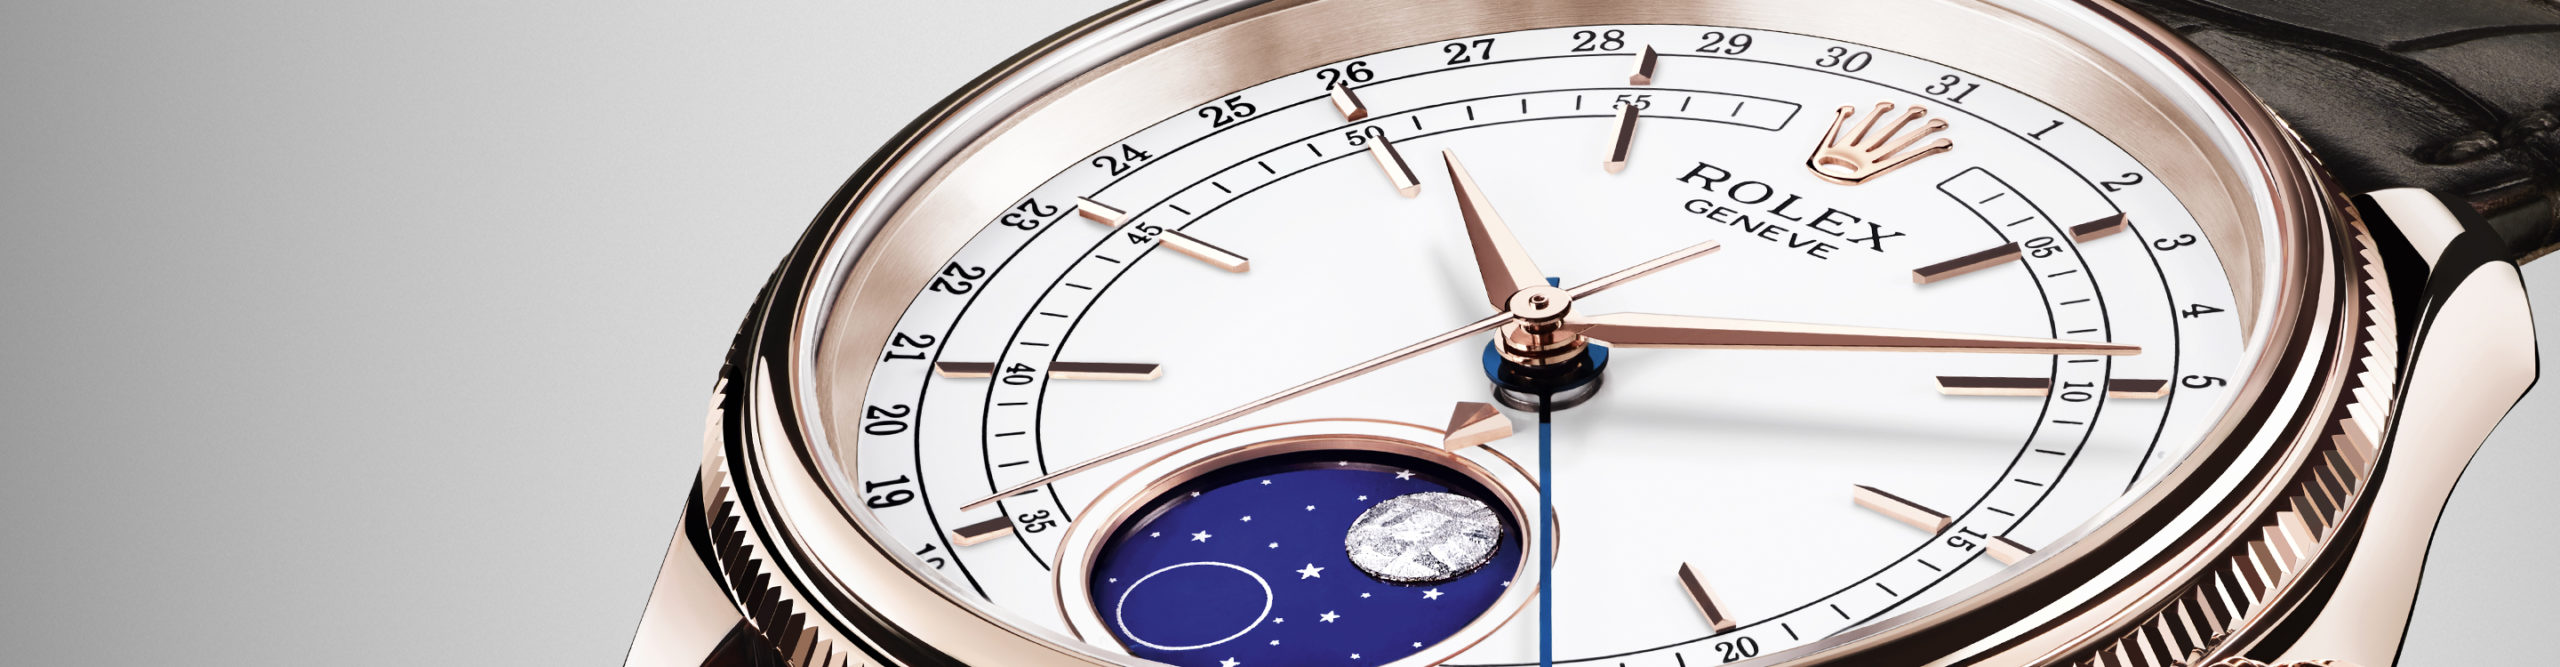 The Classical watch